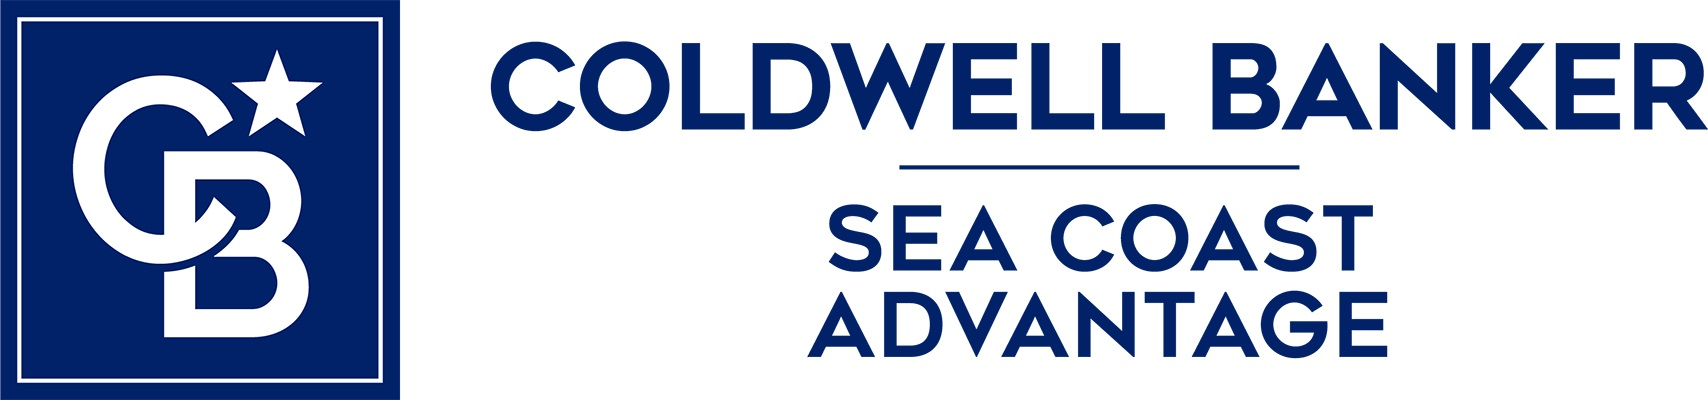 Ruby Henry - Coldwell Banker Sea Coast Advantage Realty